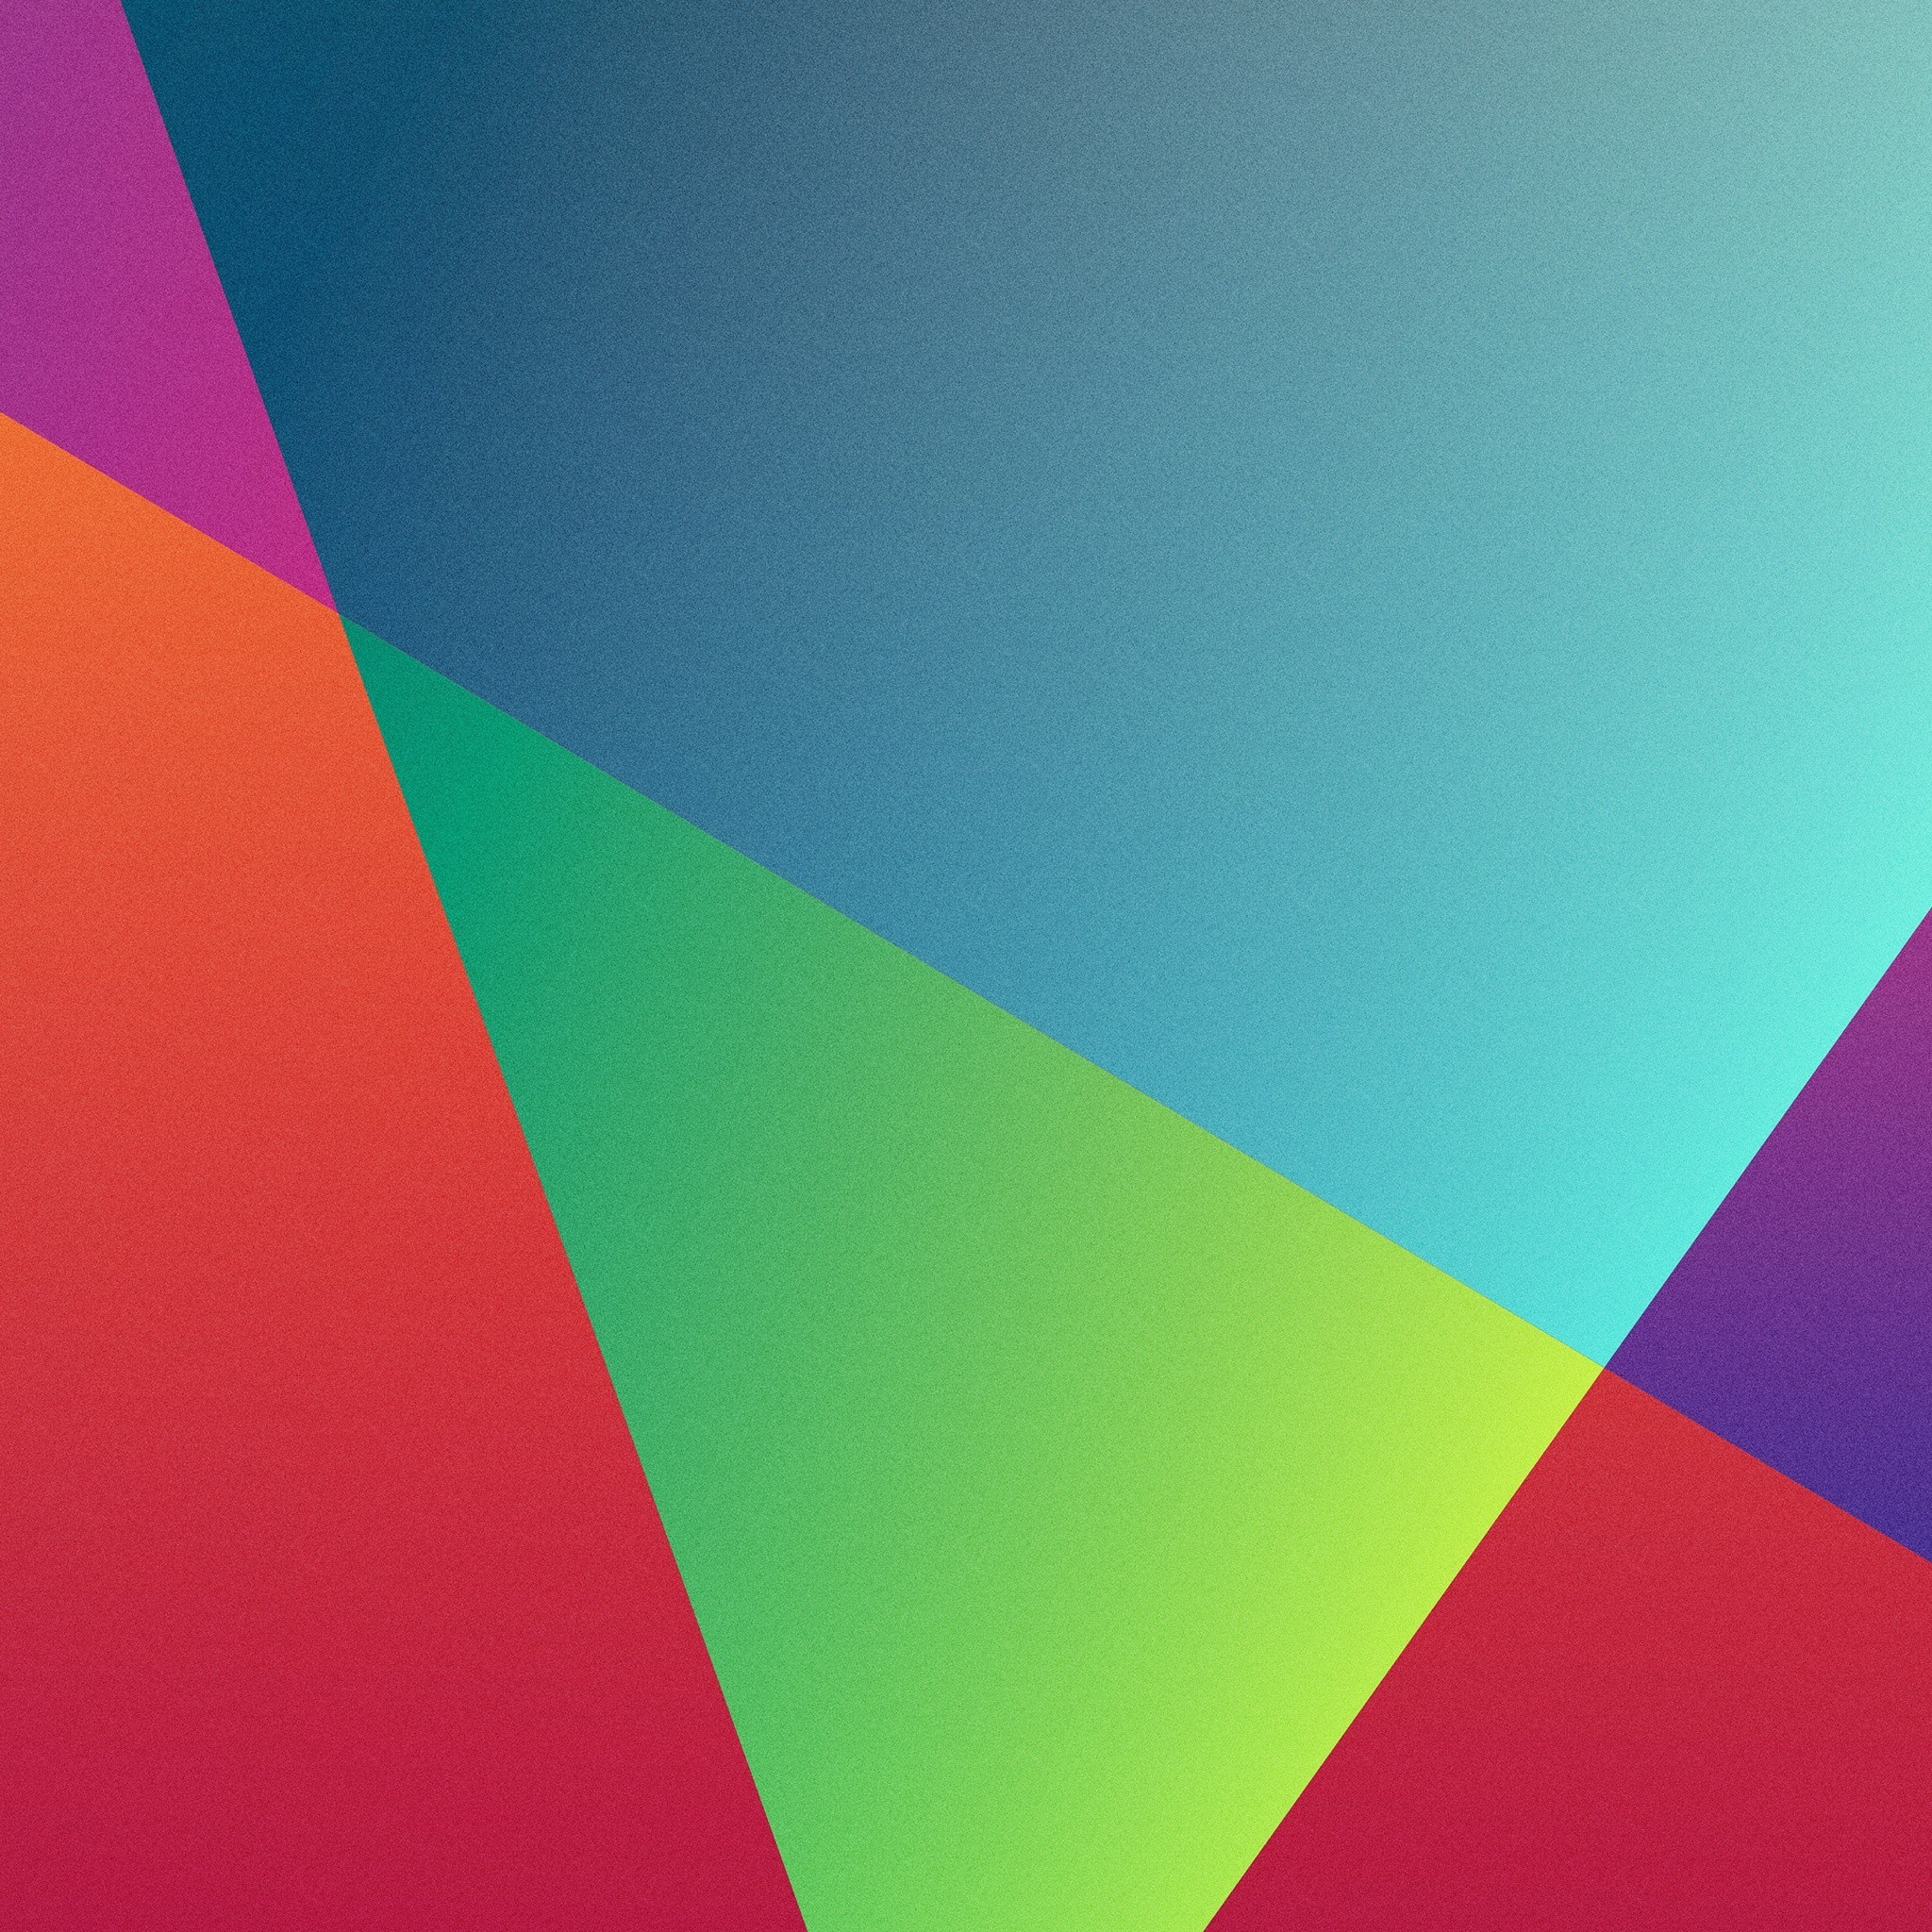 Wallpaper polygon 4k hd wallpaper android wallpaper triangle wallpaper polygon 4k hd wallpaper android wallpaper triangle background orange red blue pattern os 3519 4k wallpapers is an immediate reaction voltagebd Images